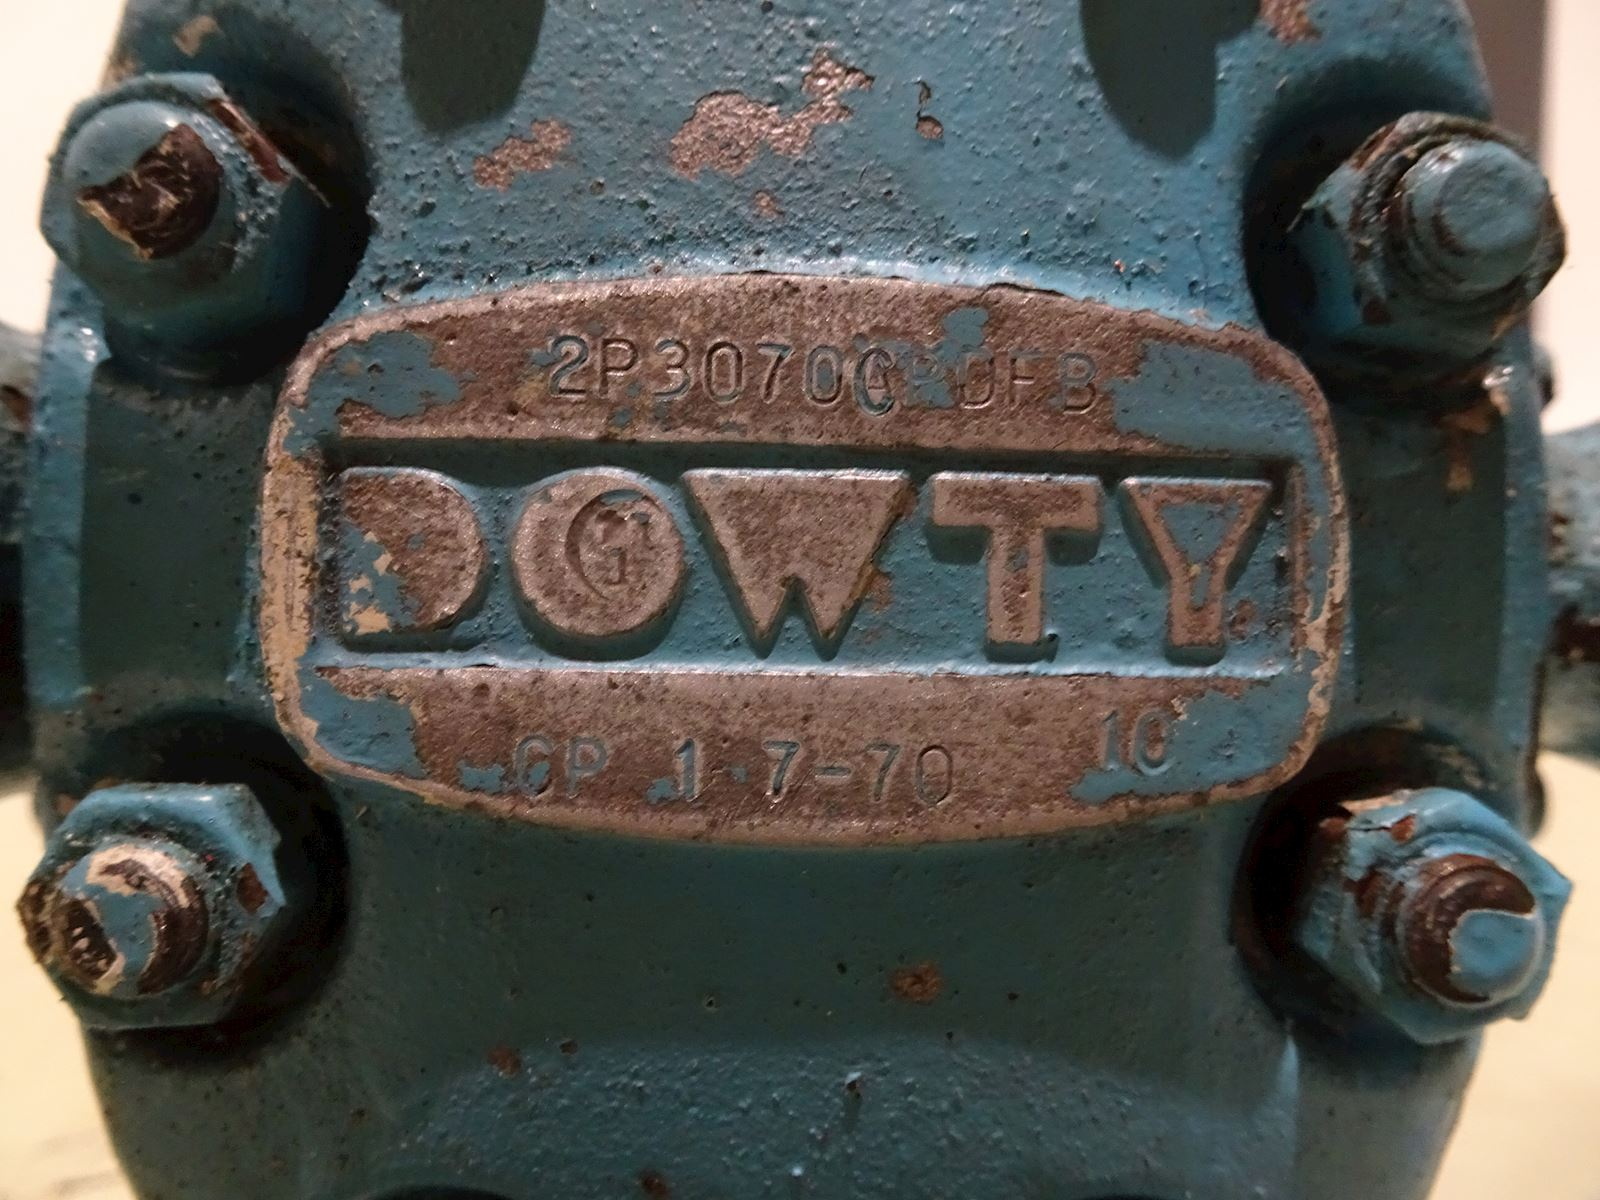 Dowty 2P3070CPDFB